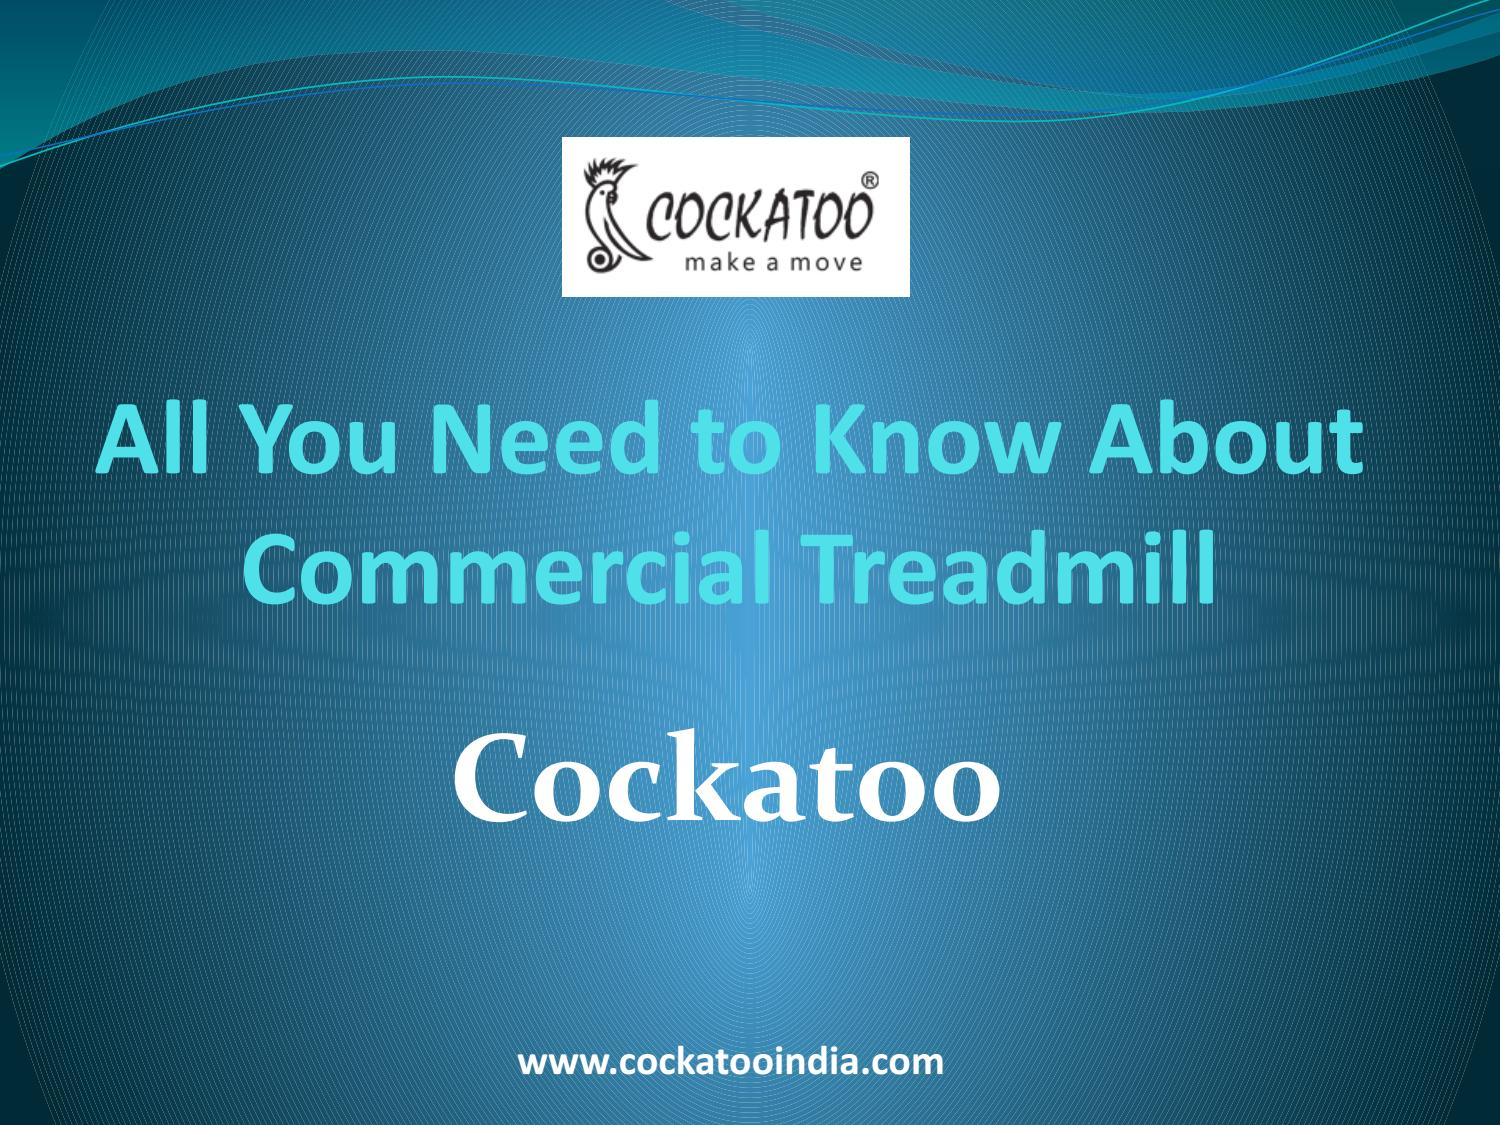 All You Need to Know About Commercial Treadmill